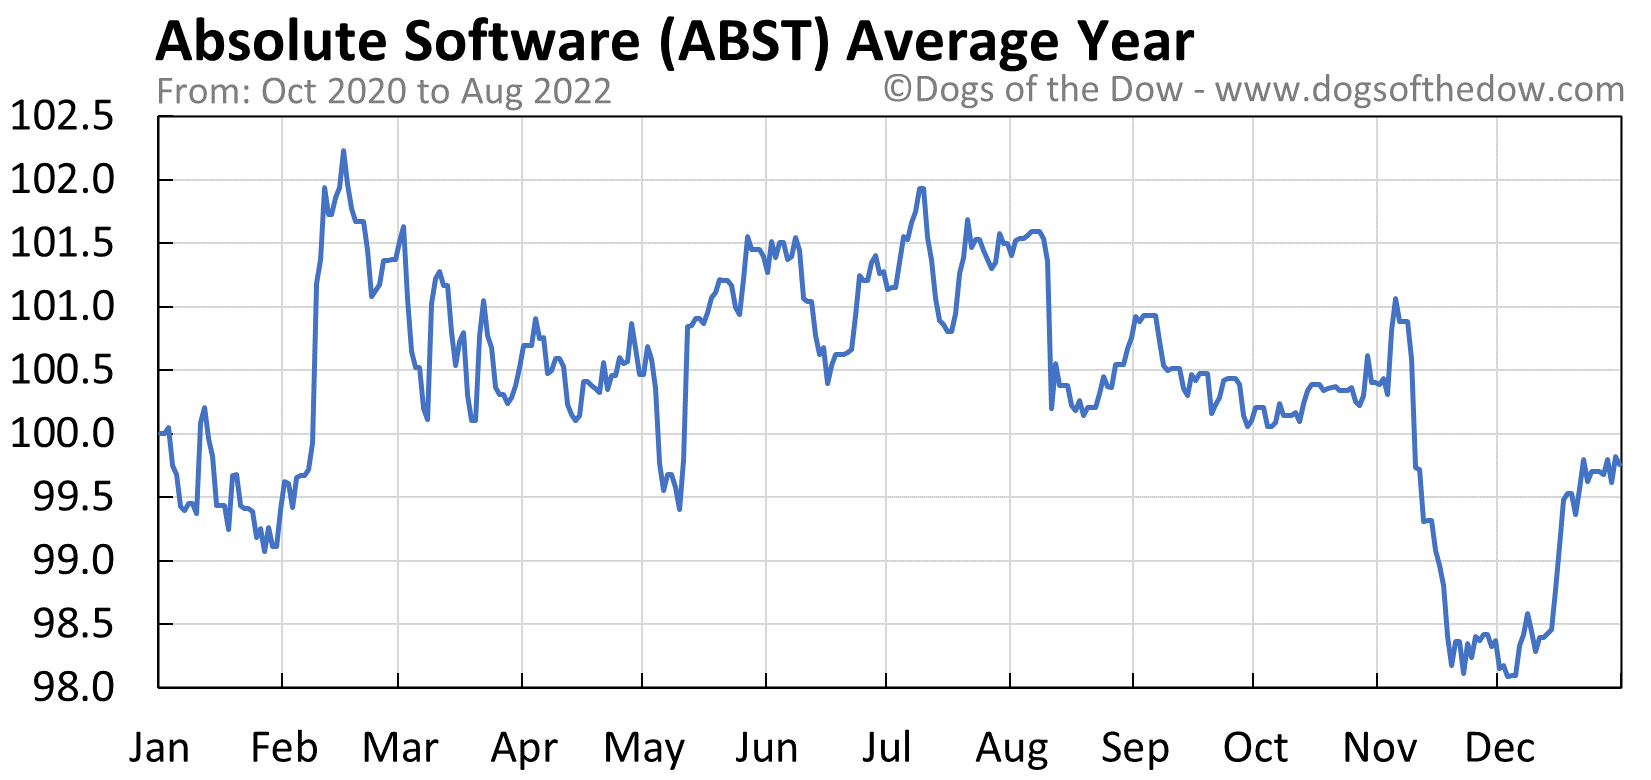 ABST average year chart